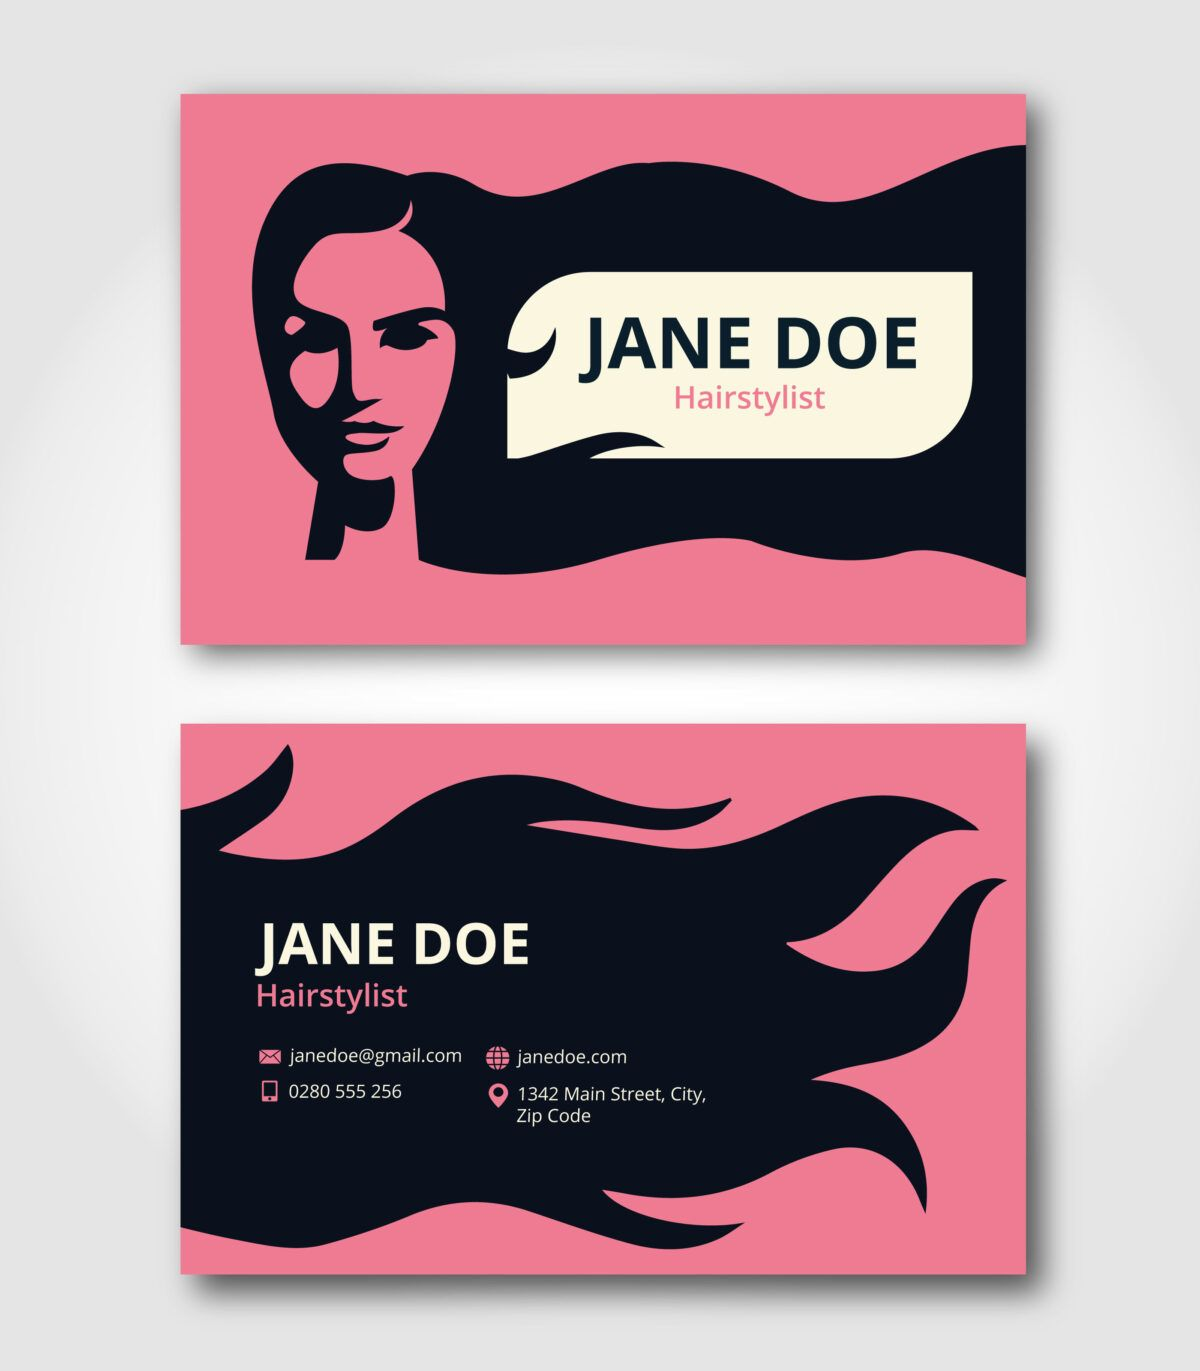 Hairstylist Business Card Template Download Free Vectors With Hair Salon Business Hairstylist Business Cards Salon Business Cards Hairdresser Business Cards